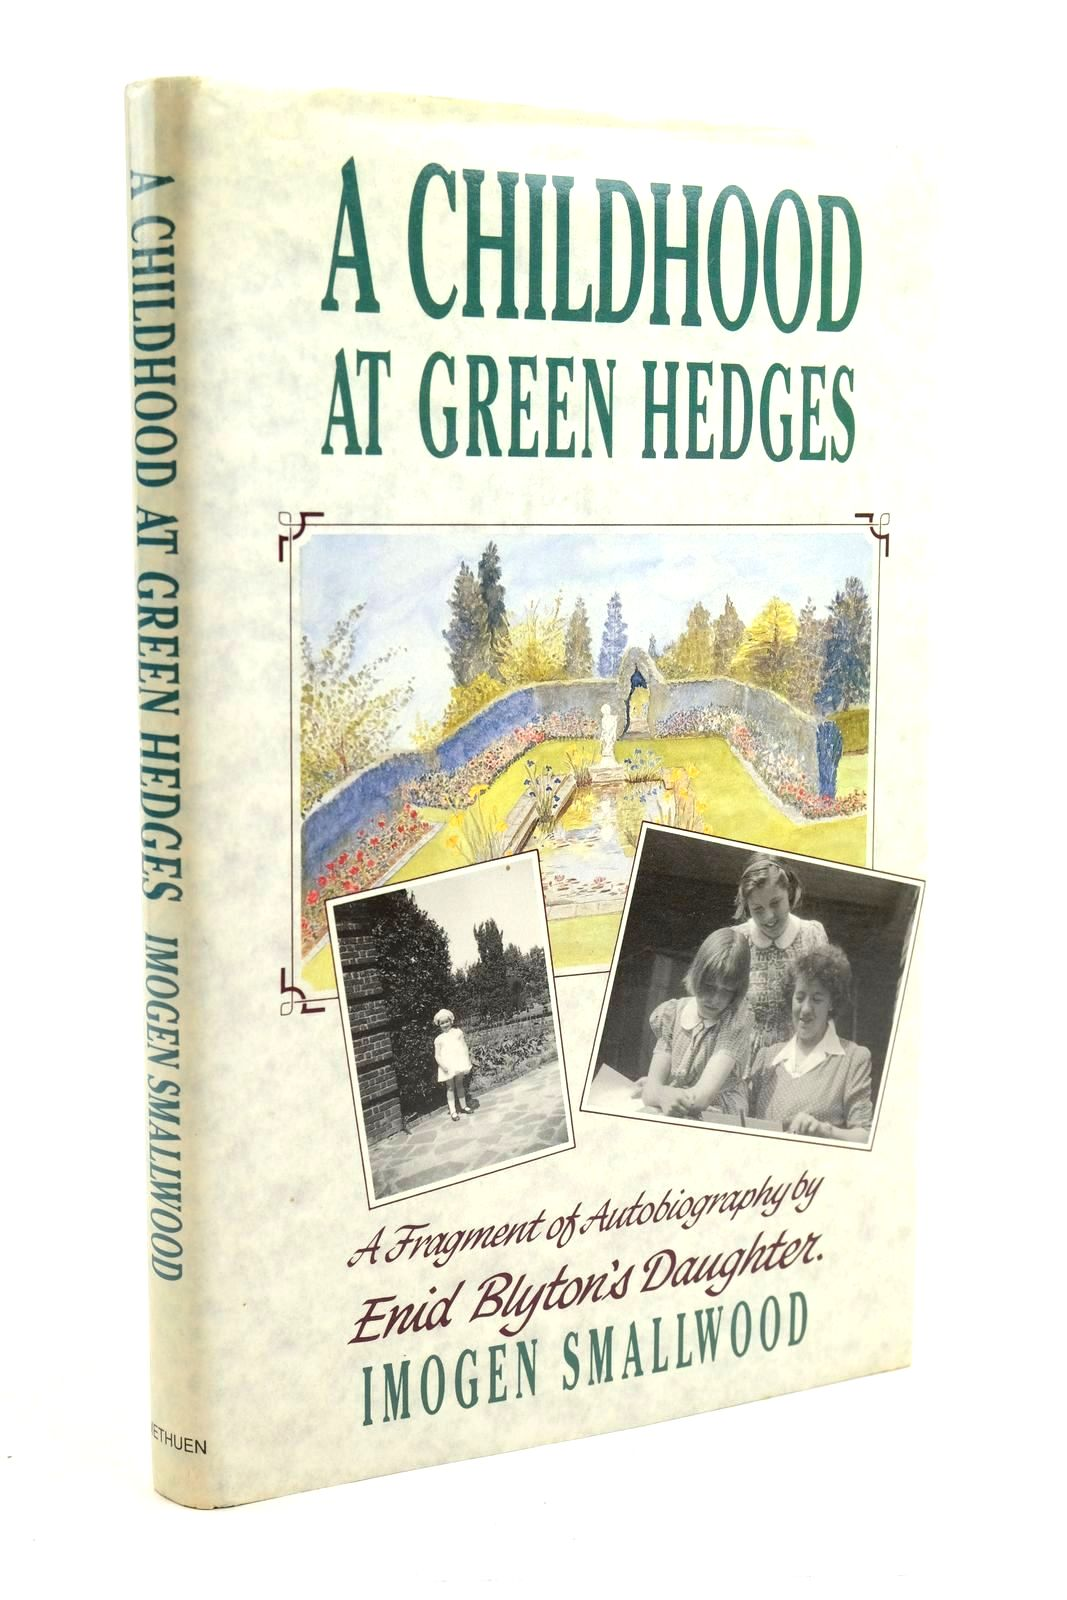 Photo of A CHILDHOOD AT GREEN HEDGES written by Smallwood, Imogen published by Methuen Children's Books (STOCK CODE: 1320995)  for sale by Stella & Rose's Books